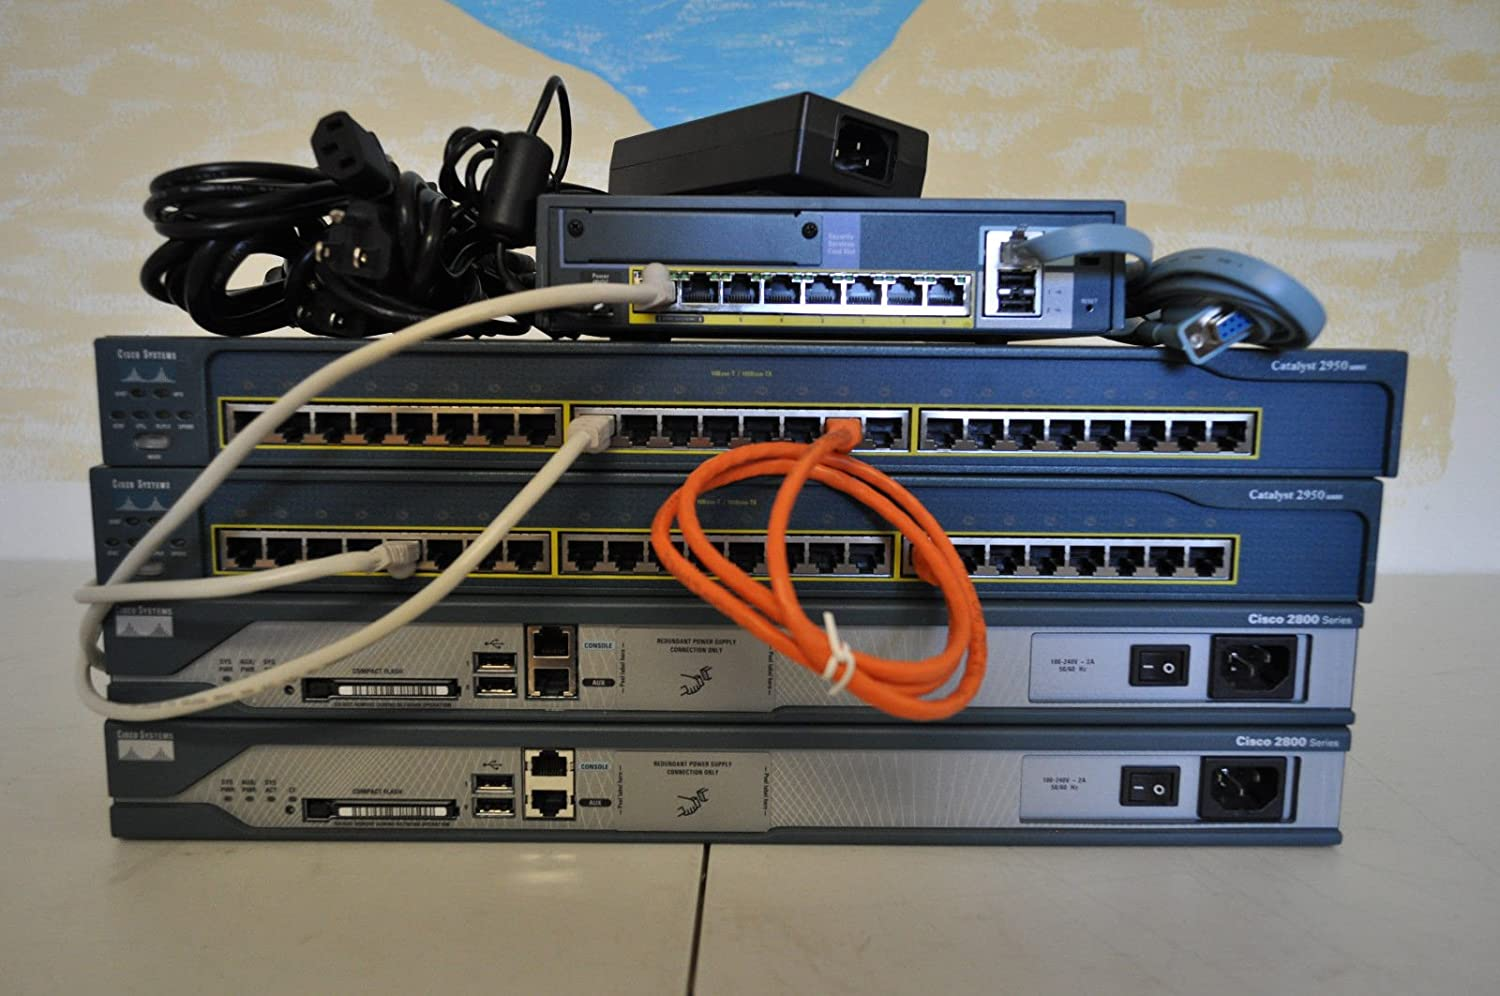 Cisco CCNA & CCNP Security Home lab kit ASA5505 Firewall 2X 2811 15.1 iOS